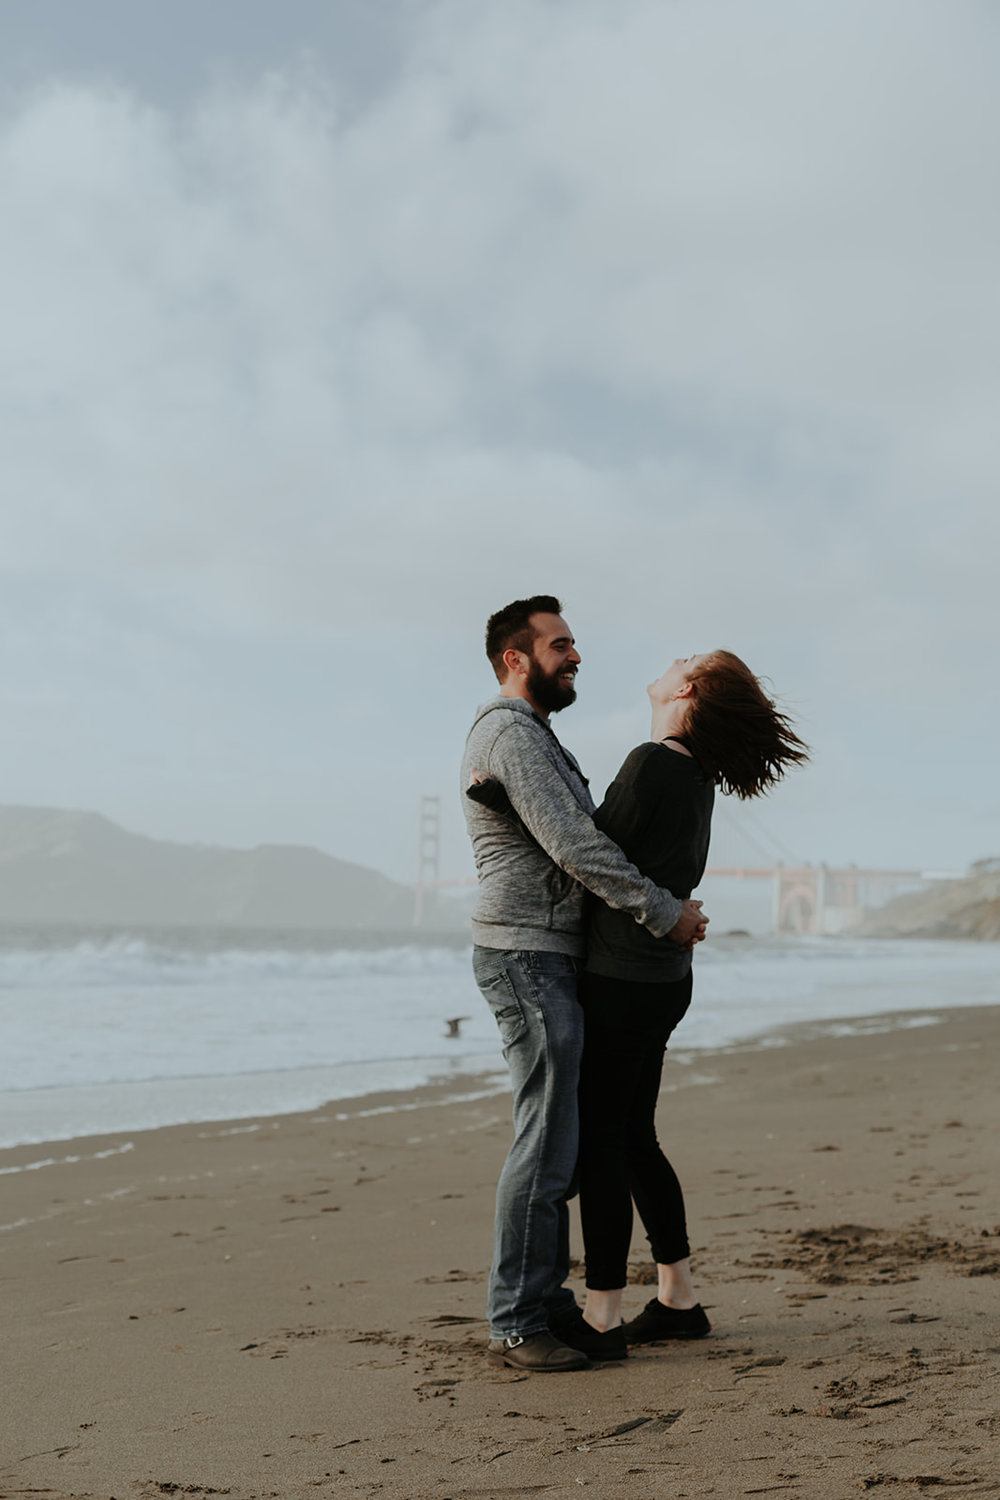 Rachel-and-Duncan-sanfran-engagement-session-earthbelowphoto-2018-42.jpg